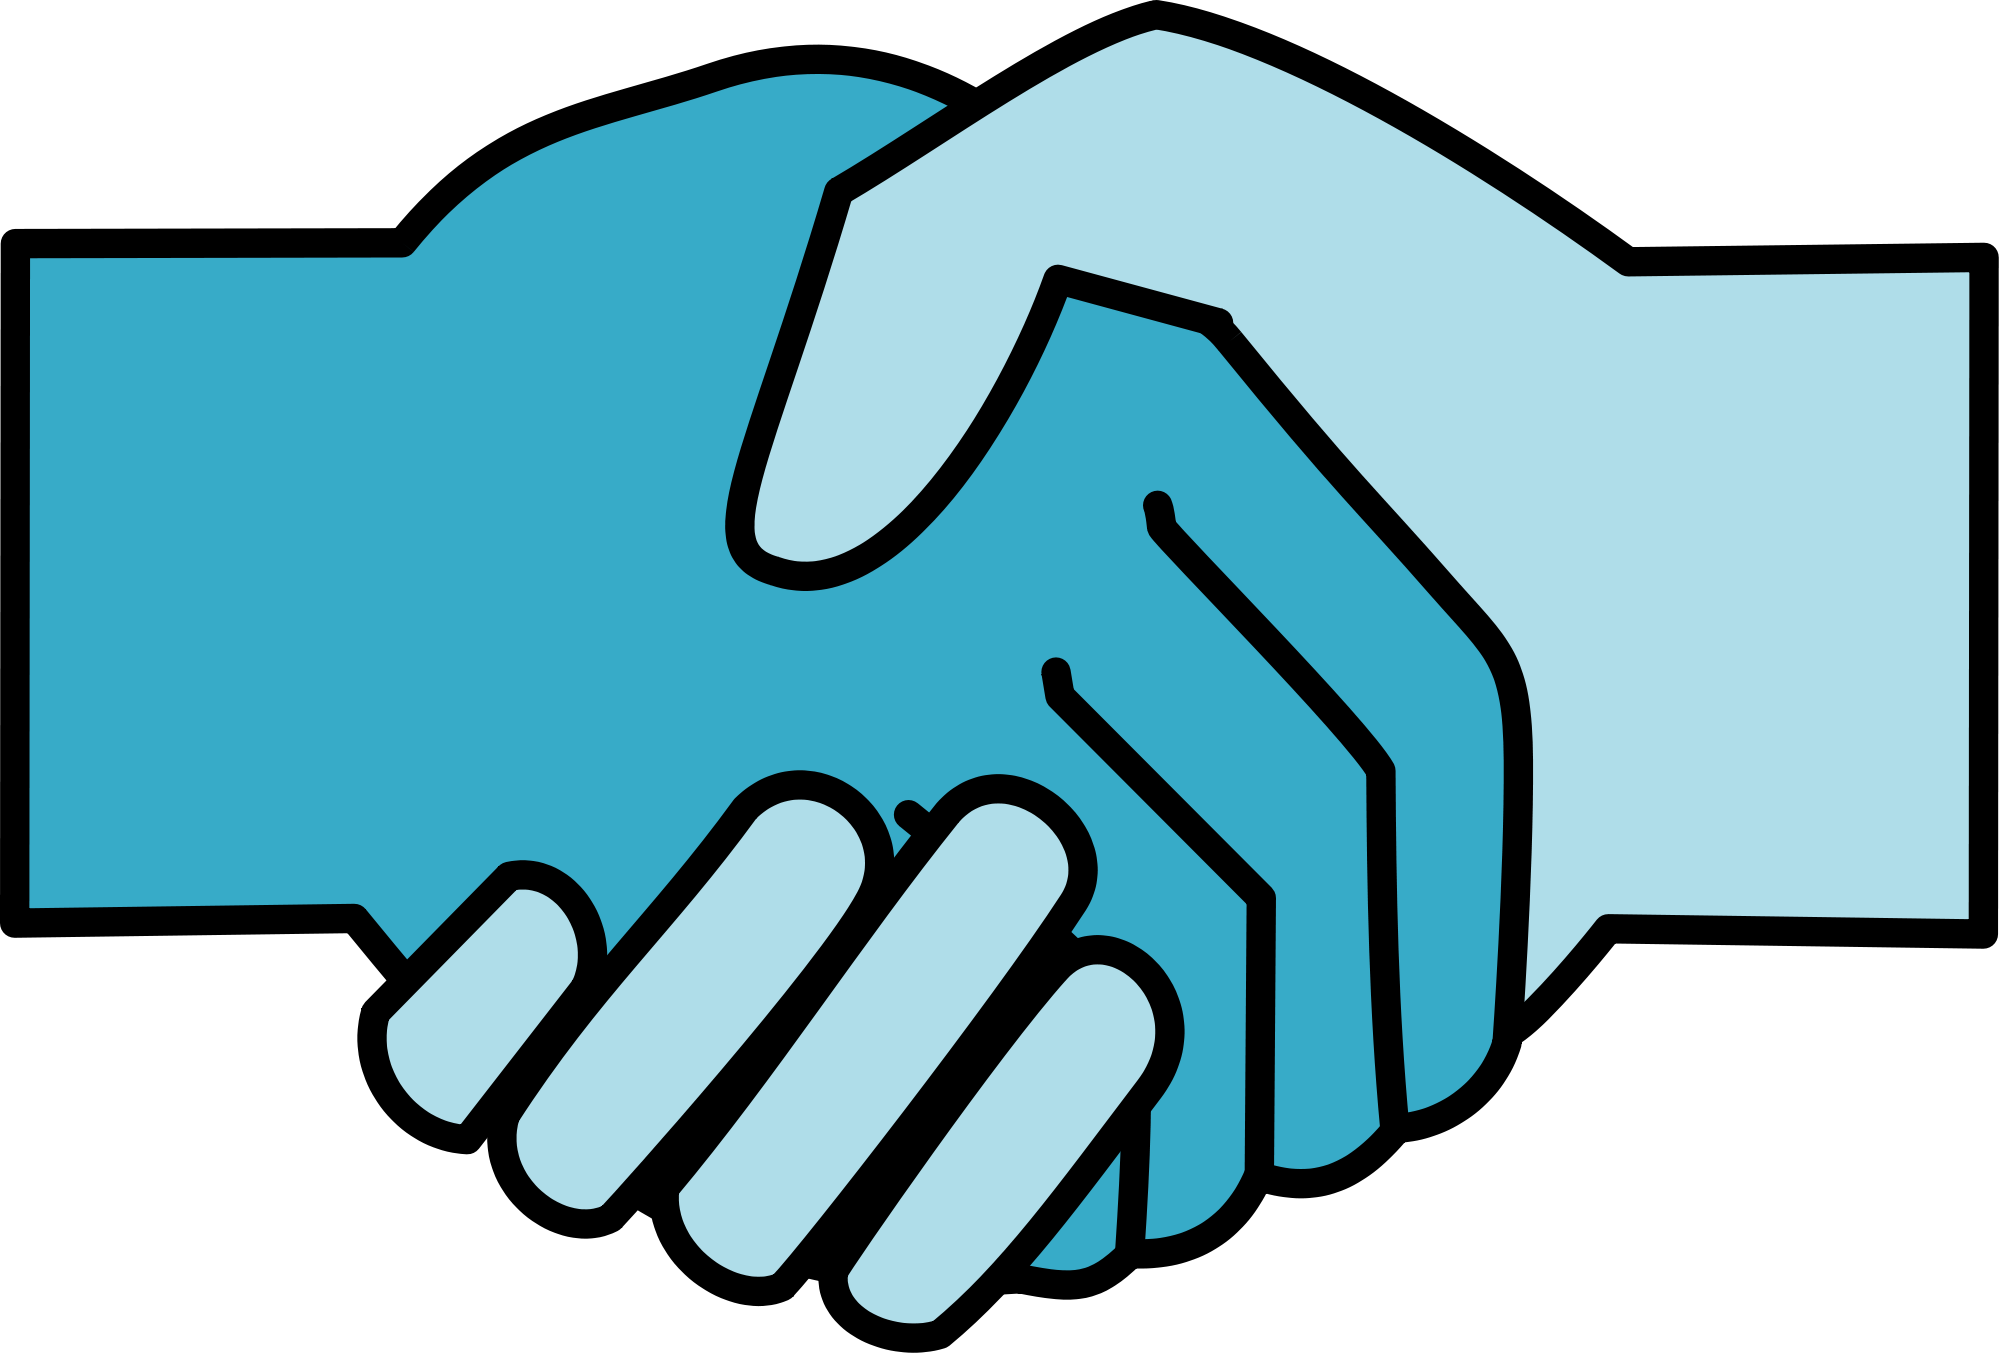 File collaboration logo v. Handshake clipart conflict